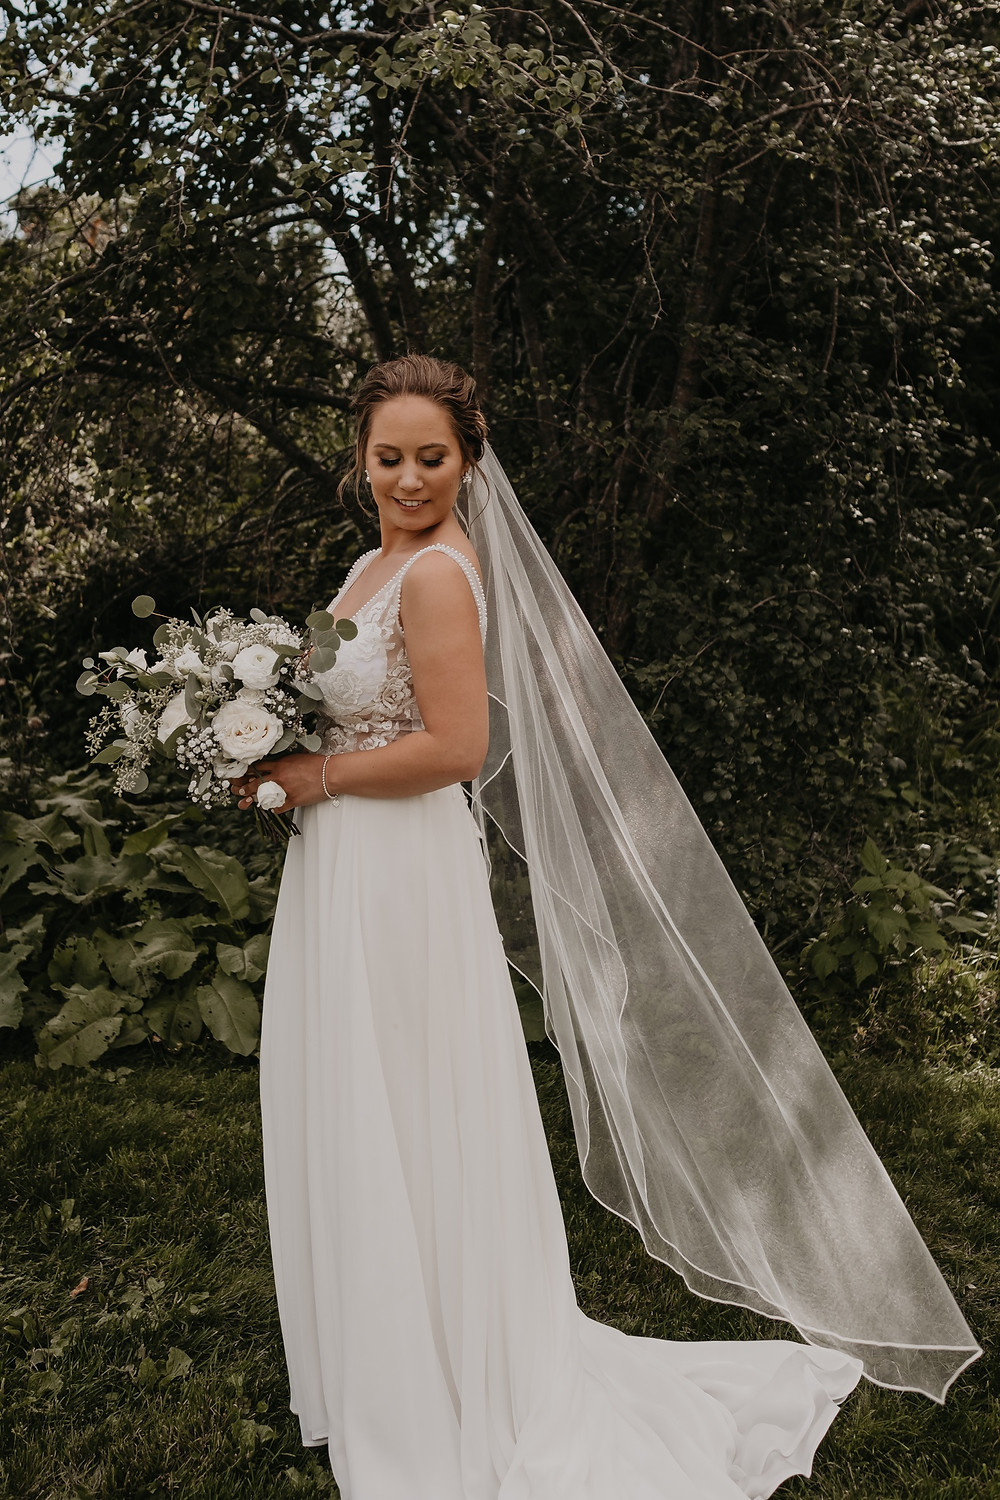 Bride holding wedding bouquet photographed by Nicole Leanne Photography